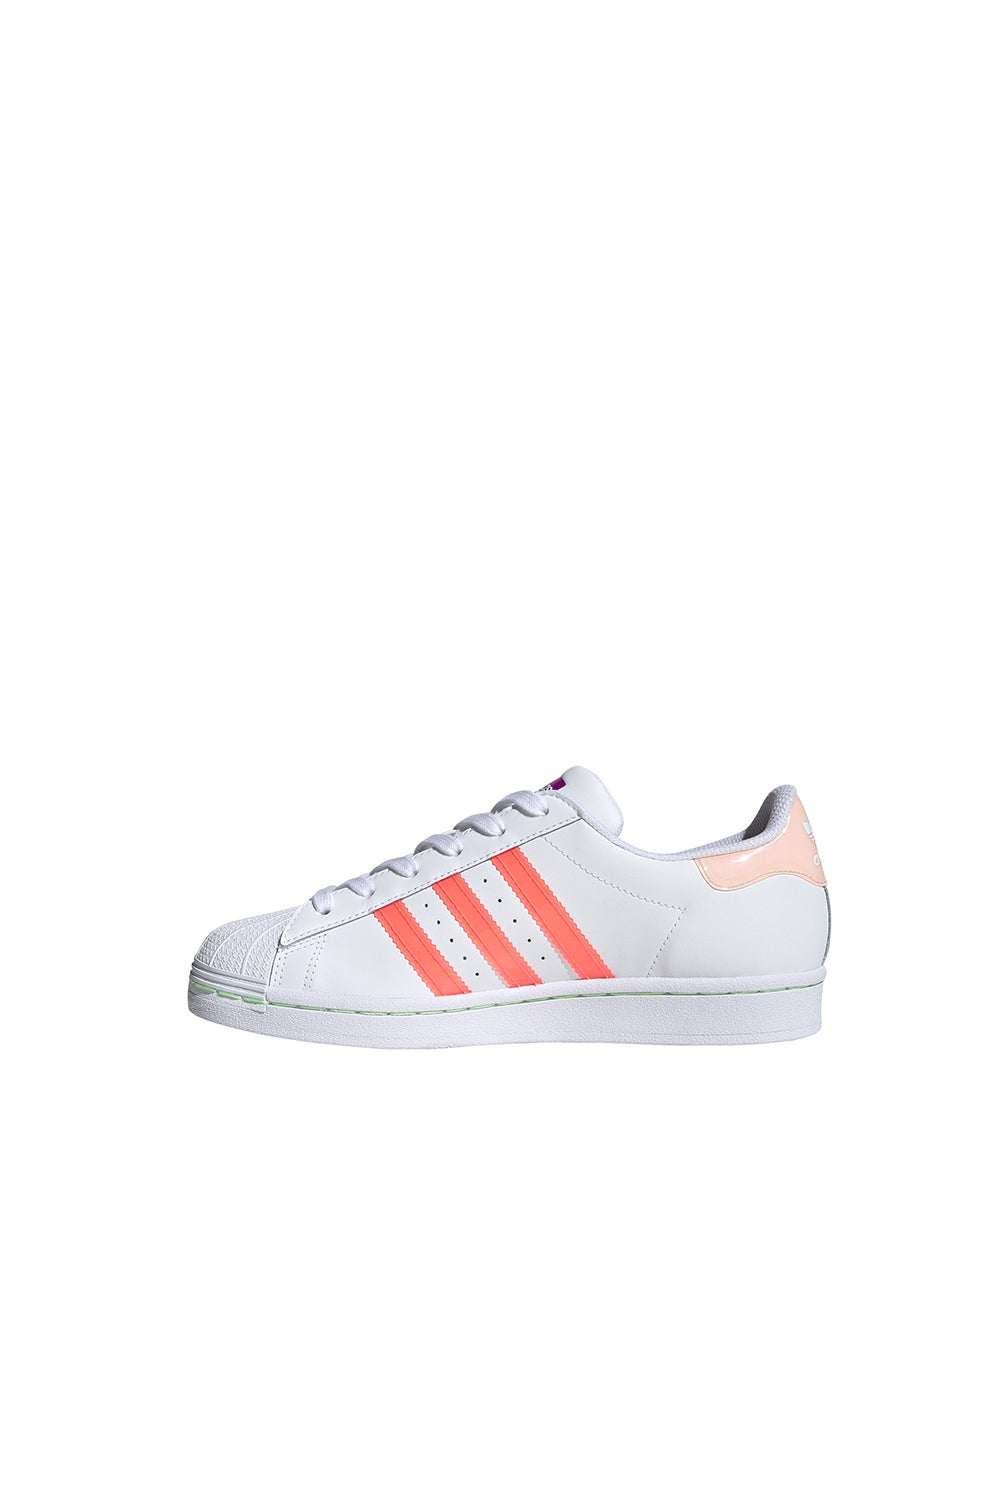 adidas Superstar Shoes Signal Pink